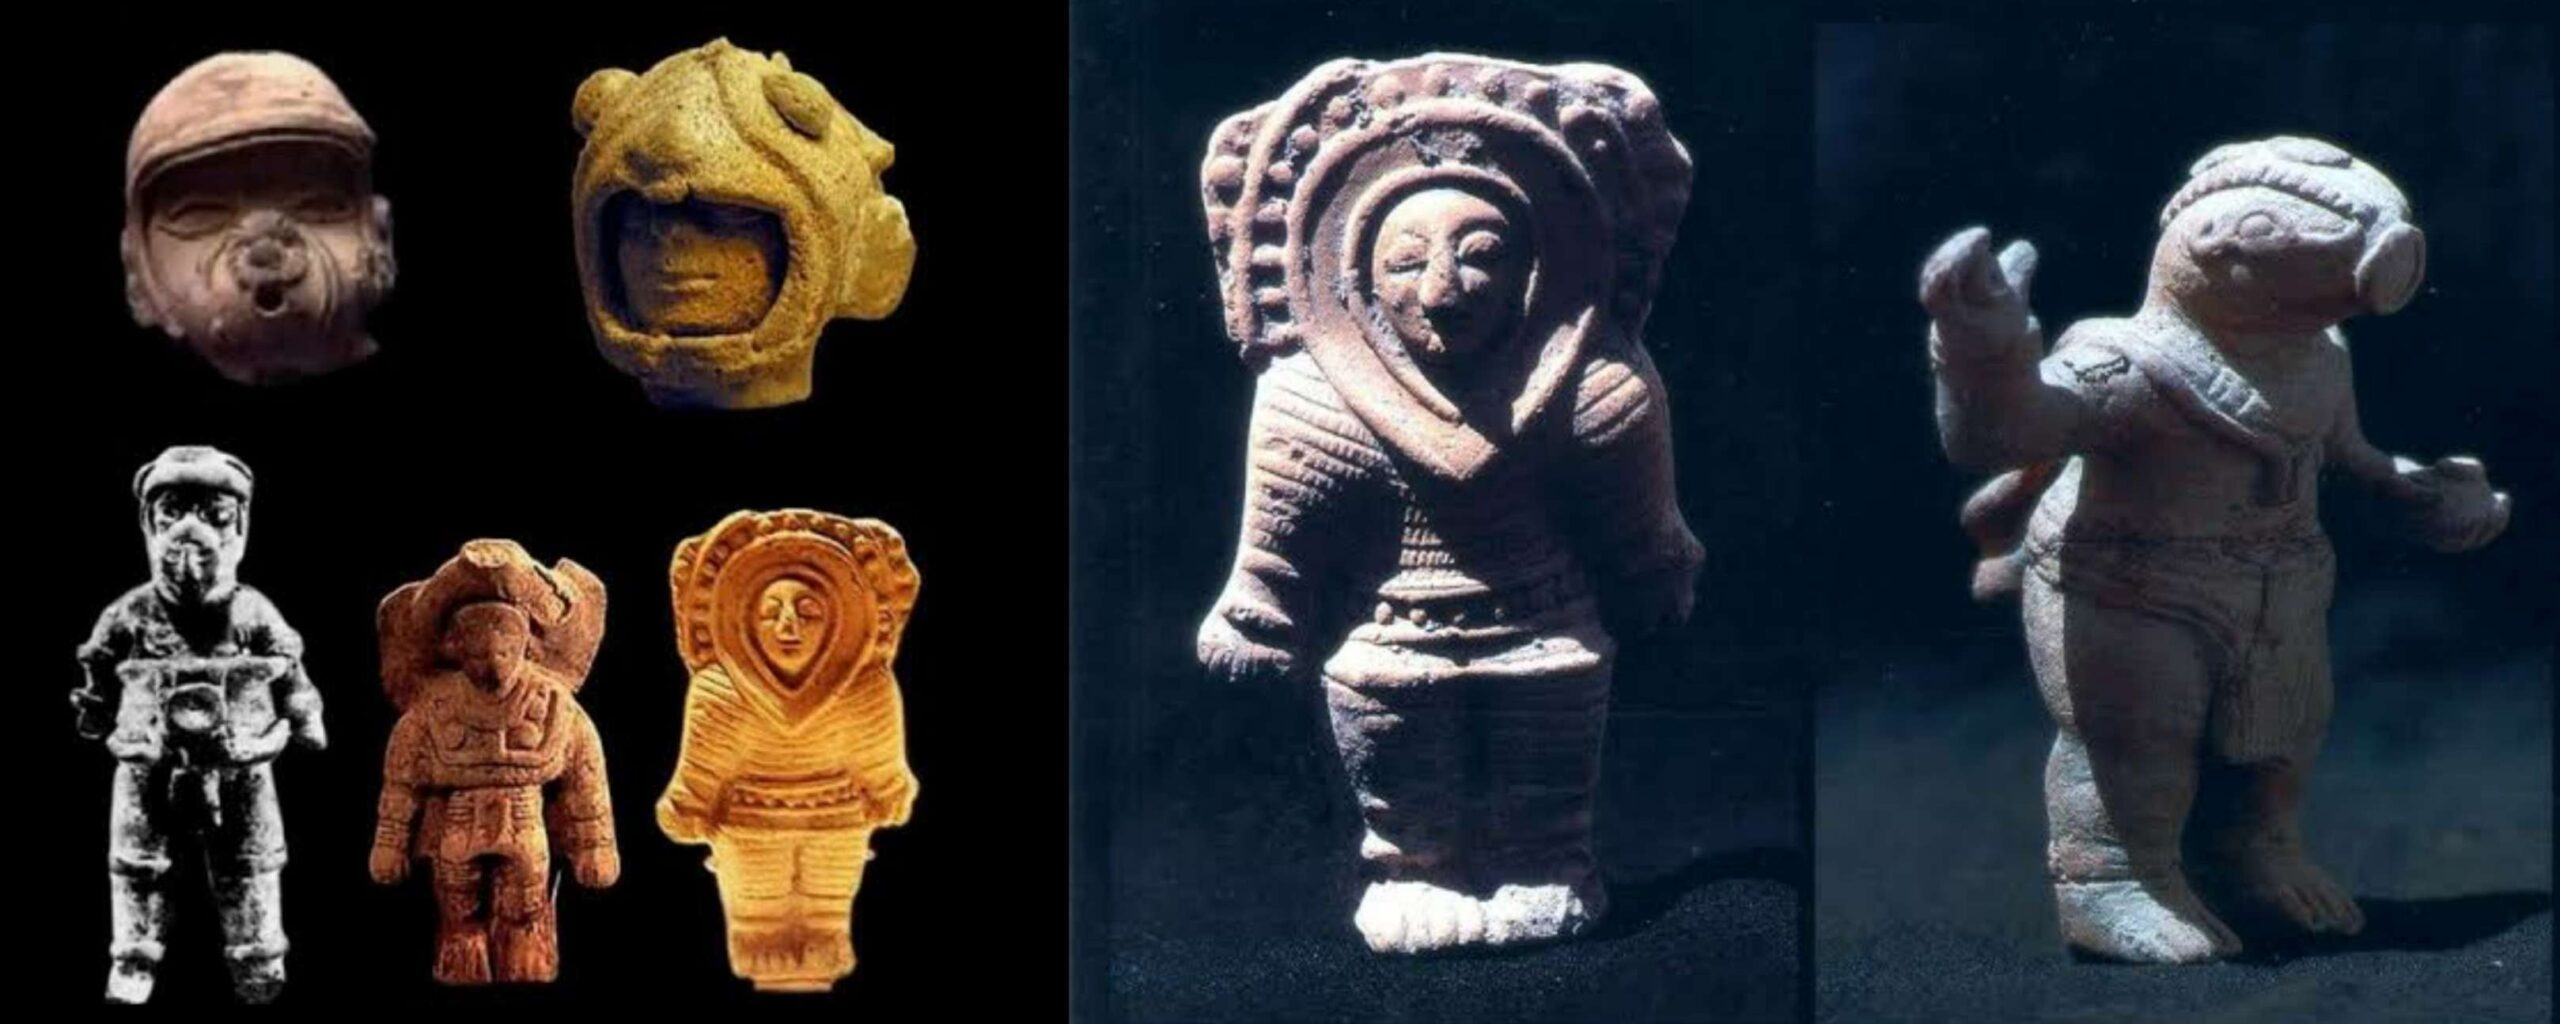 Were the Mayans visited by ancient astronauts? 6